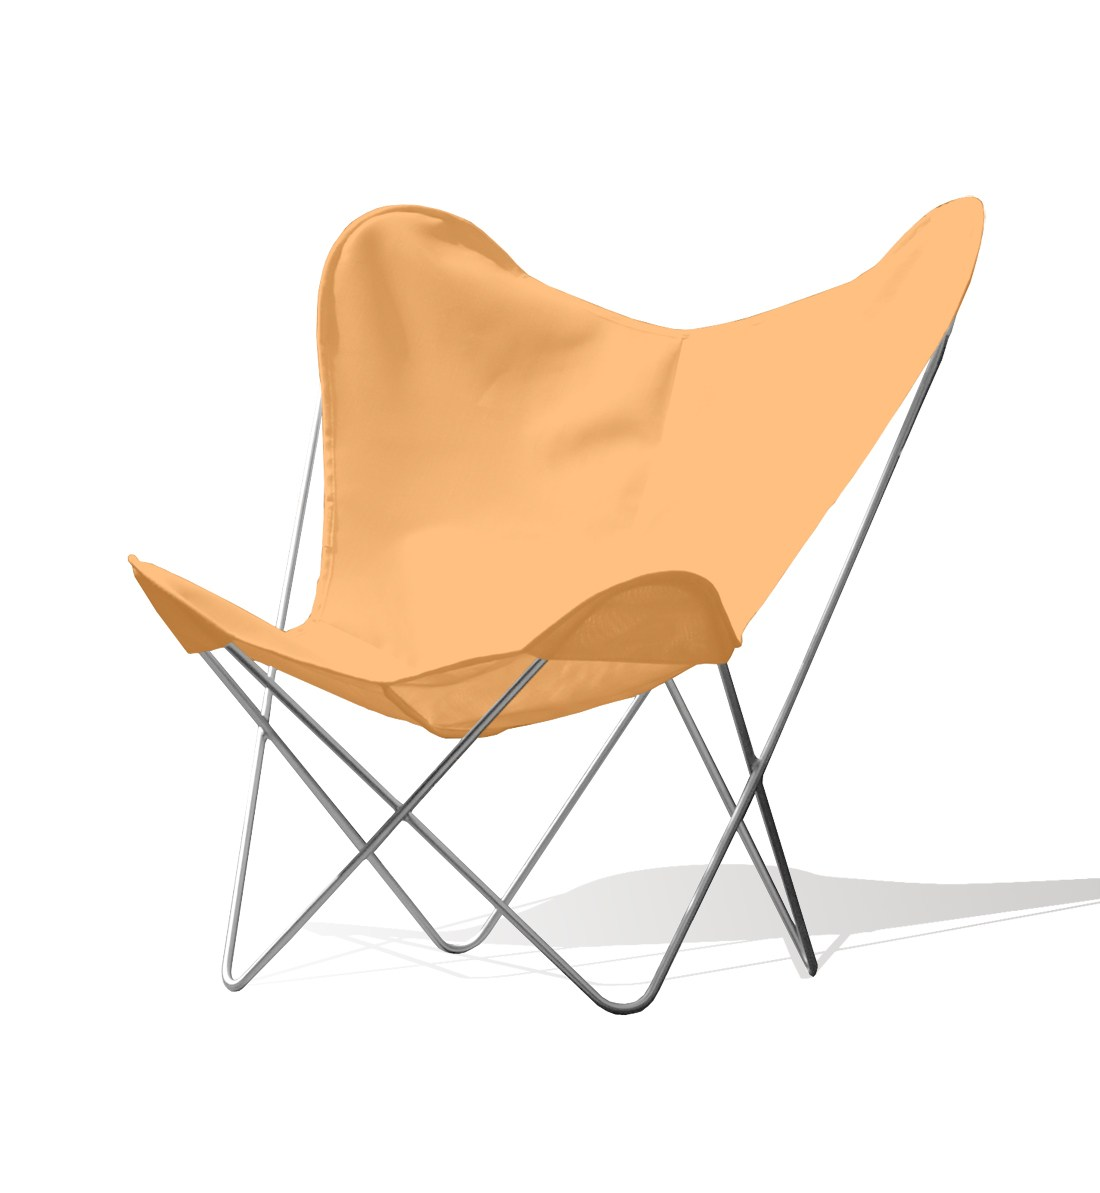 Hardoy Butterfly Chair. hardoy butterfly chair original leather ...